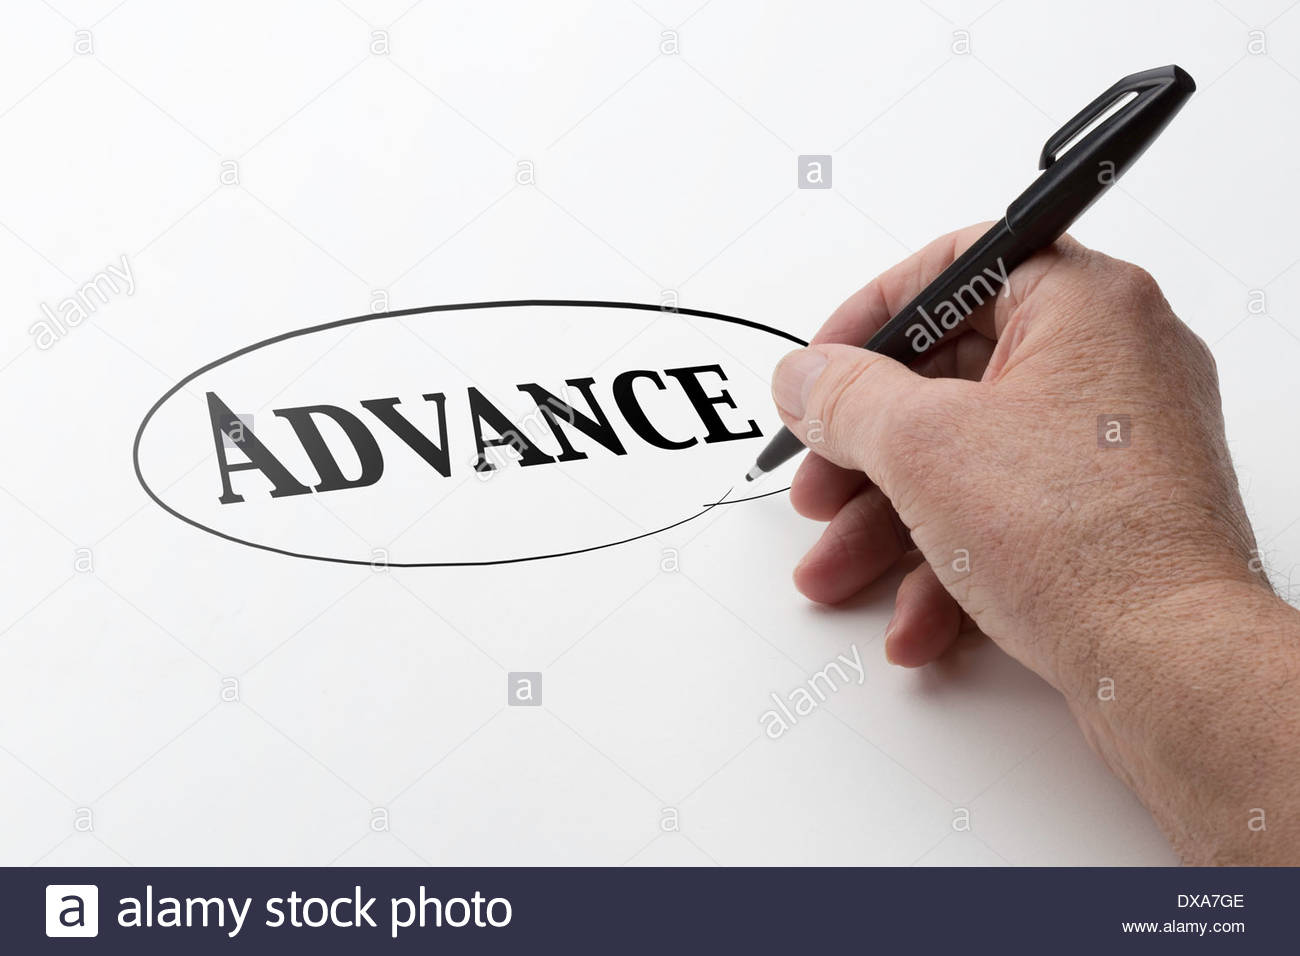 Man hand holding a black pen and encircling the word advance. - Stock Image